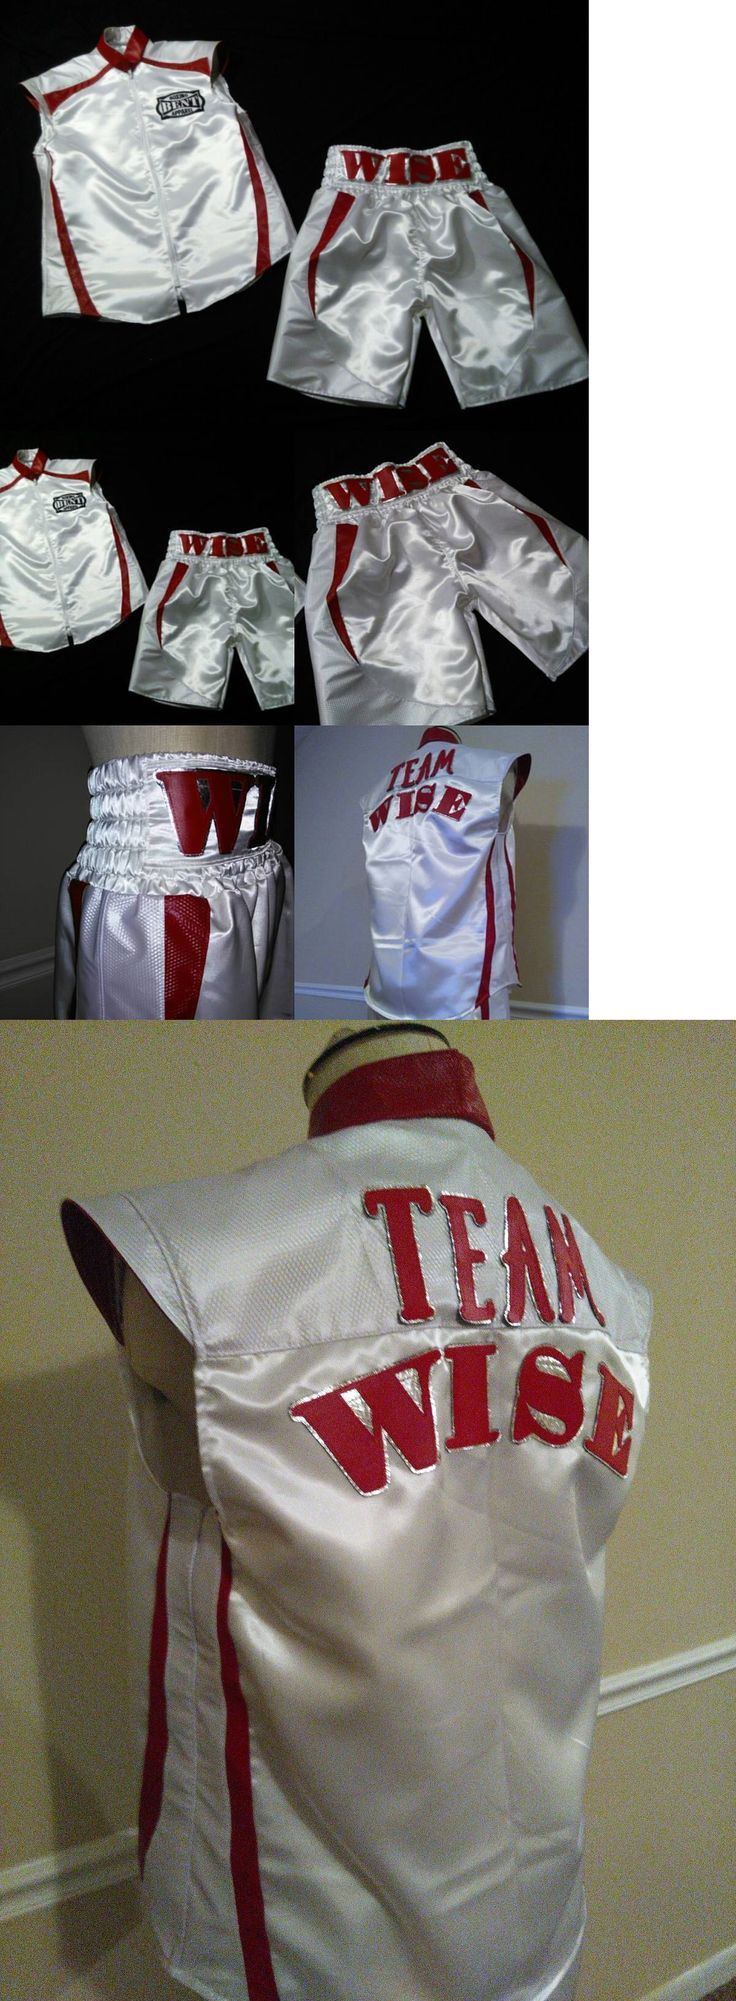 Shorts 73982: Boxing Trunks (Bent). Receive A Free $200 Hotel Gift Card With Purchase -> BUY IT NOW ONLY: $250 on eBay!